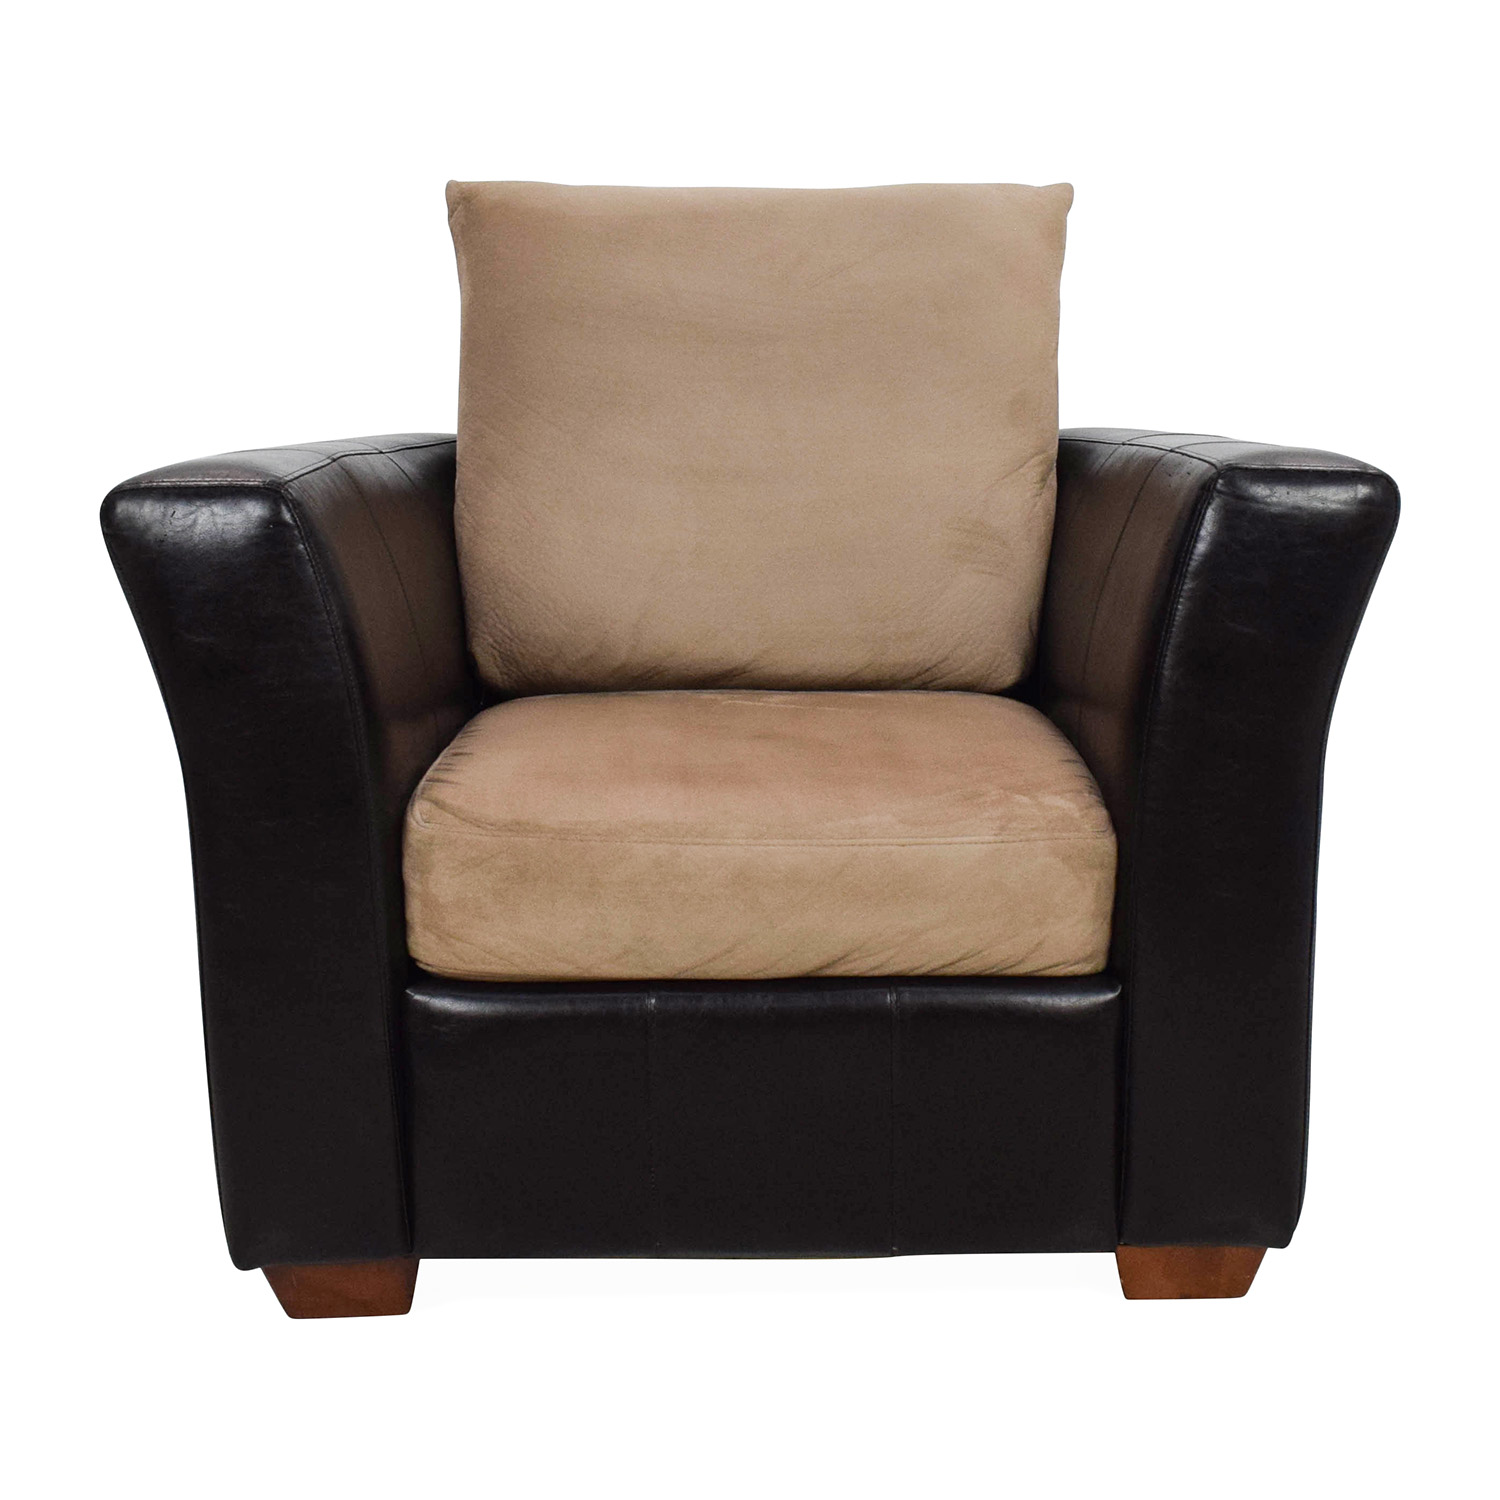 buy Jennifer Convertibles Jennifer Convertibles Leather Chair online